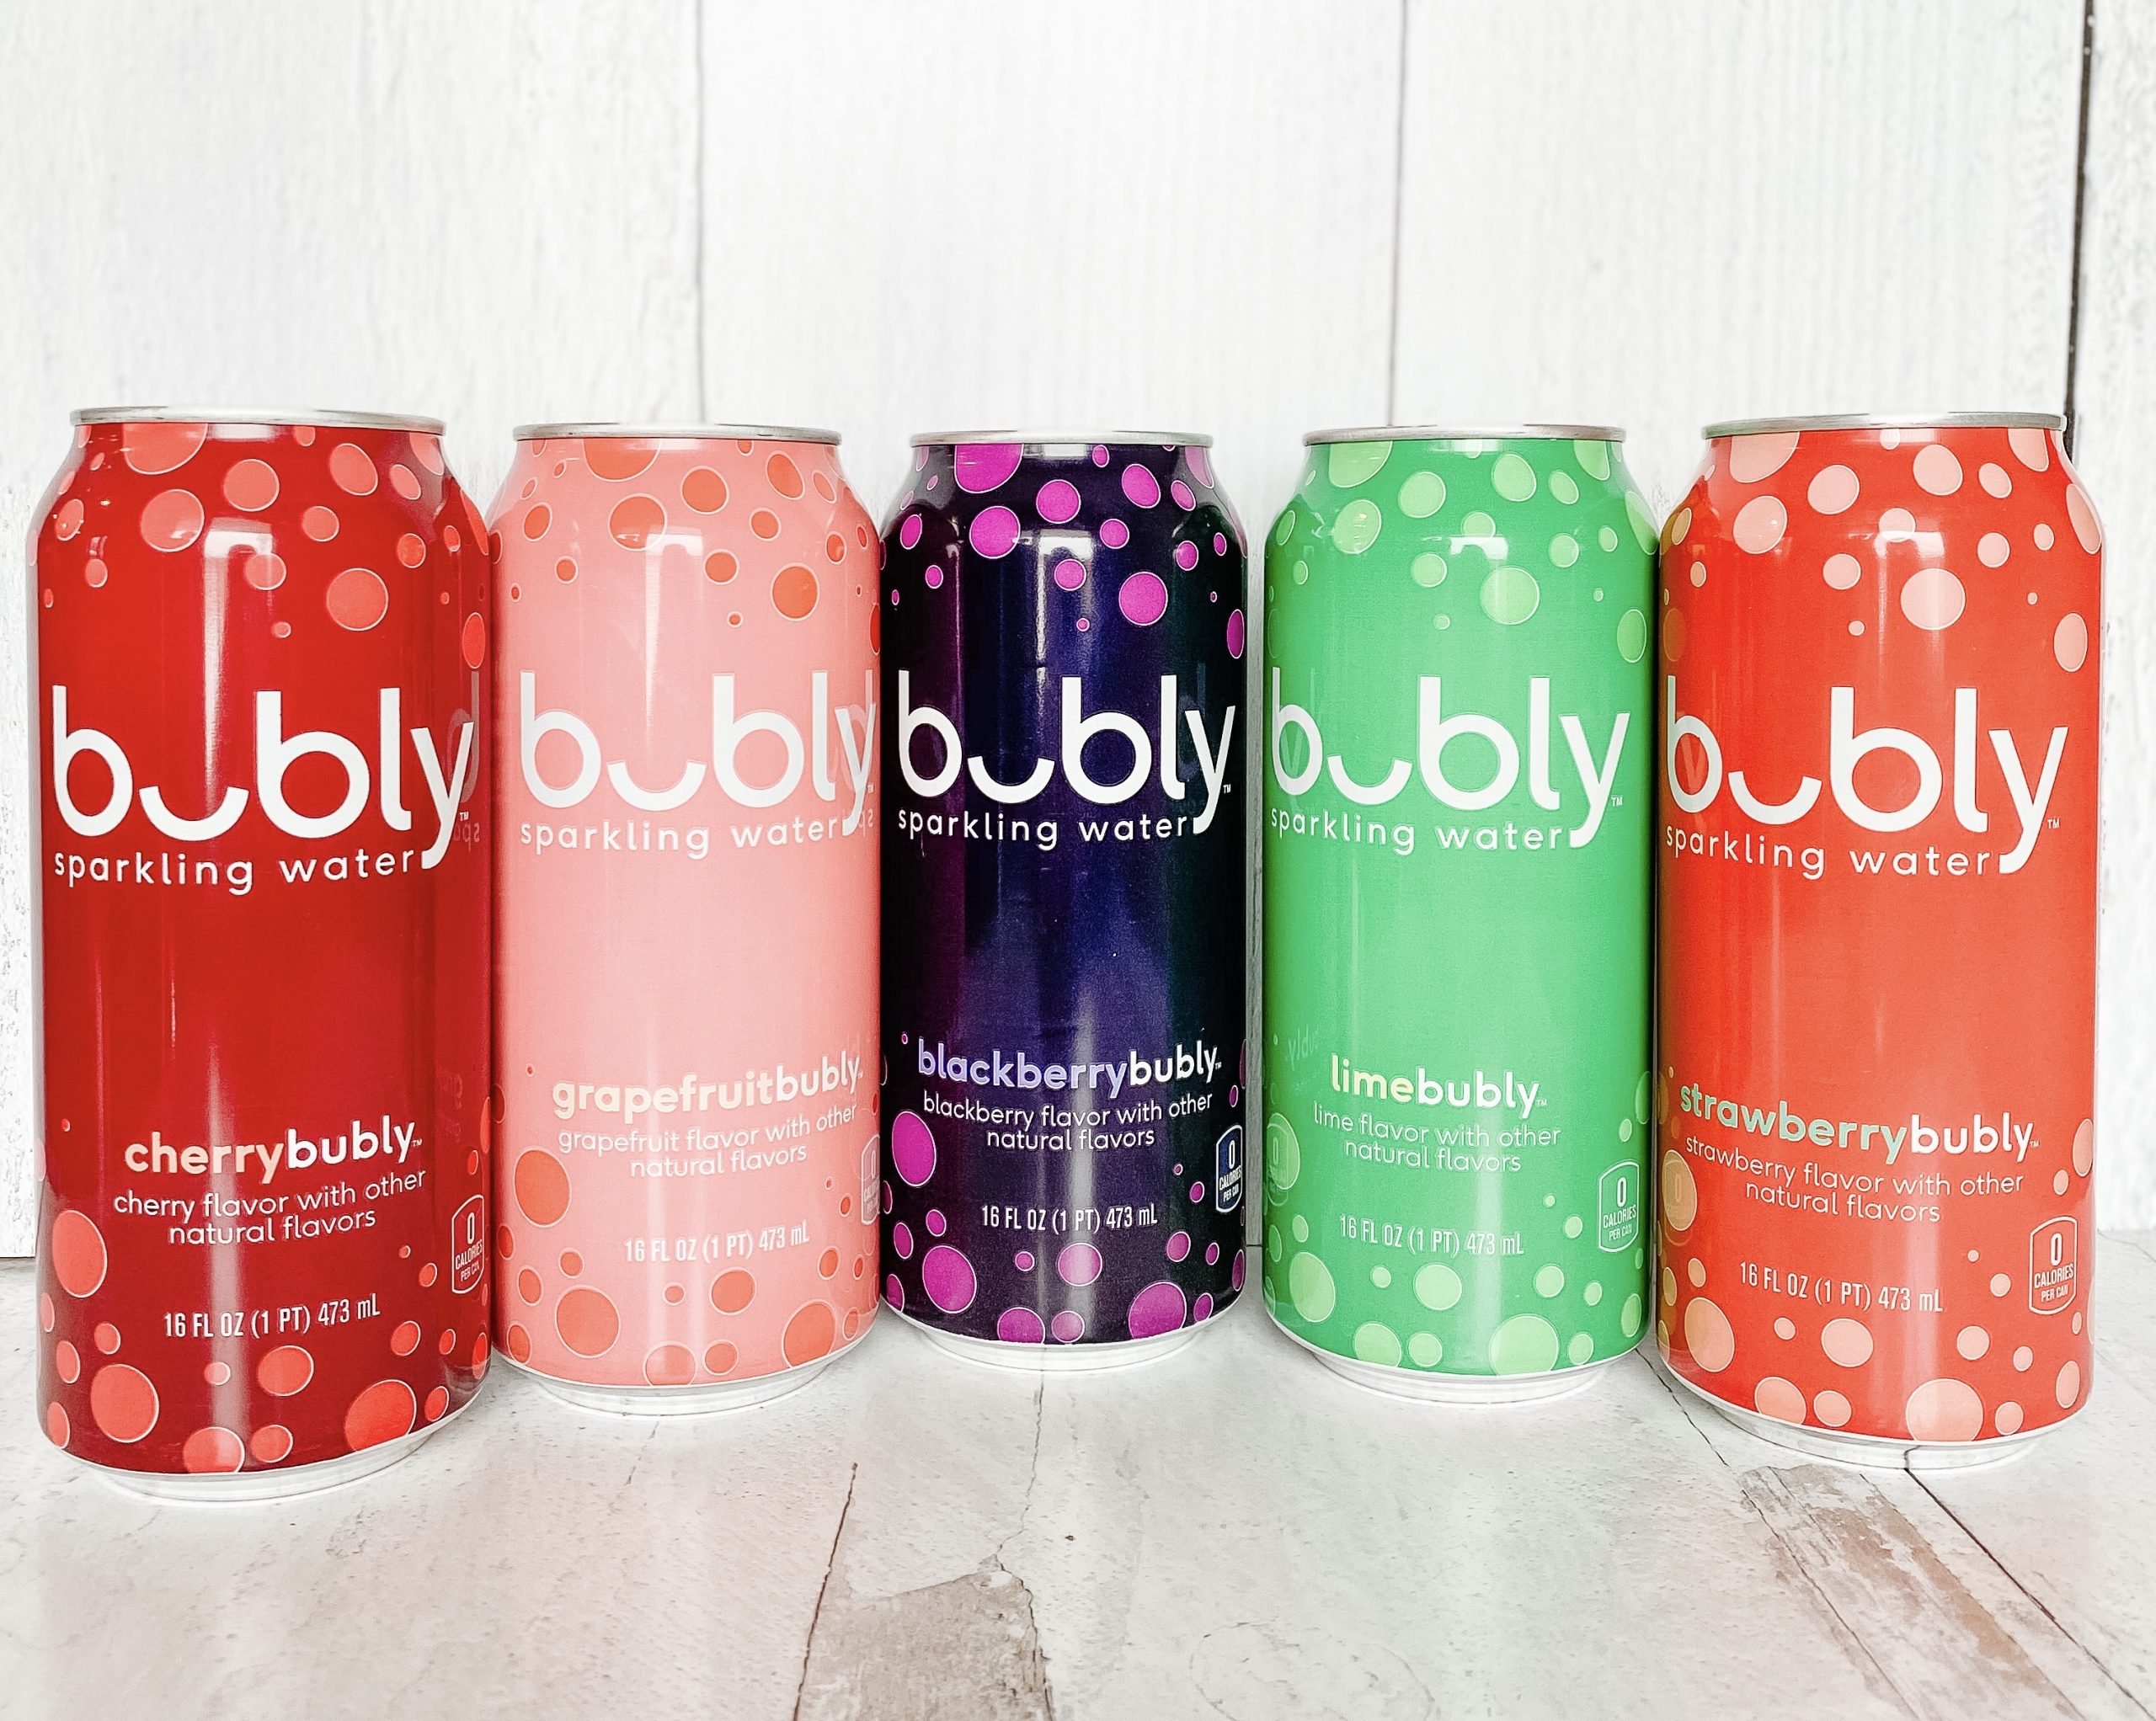 Bubly flavored water for bubbly strawberry recipes